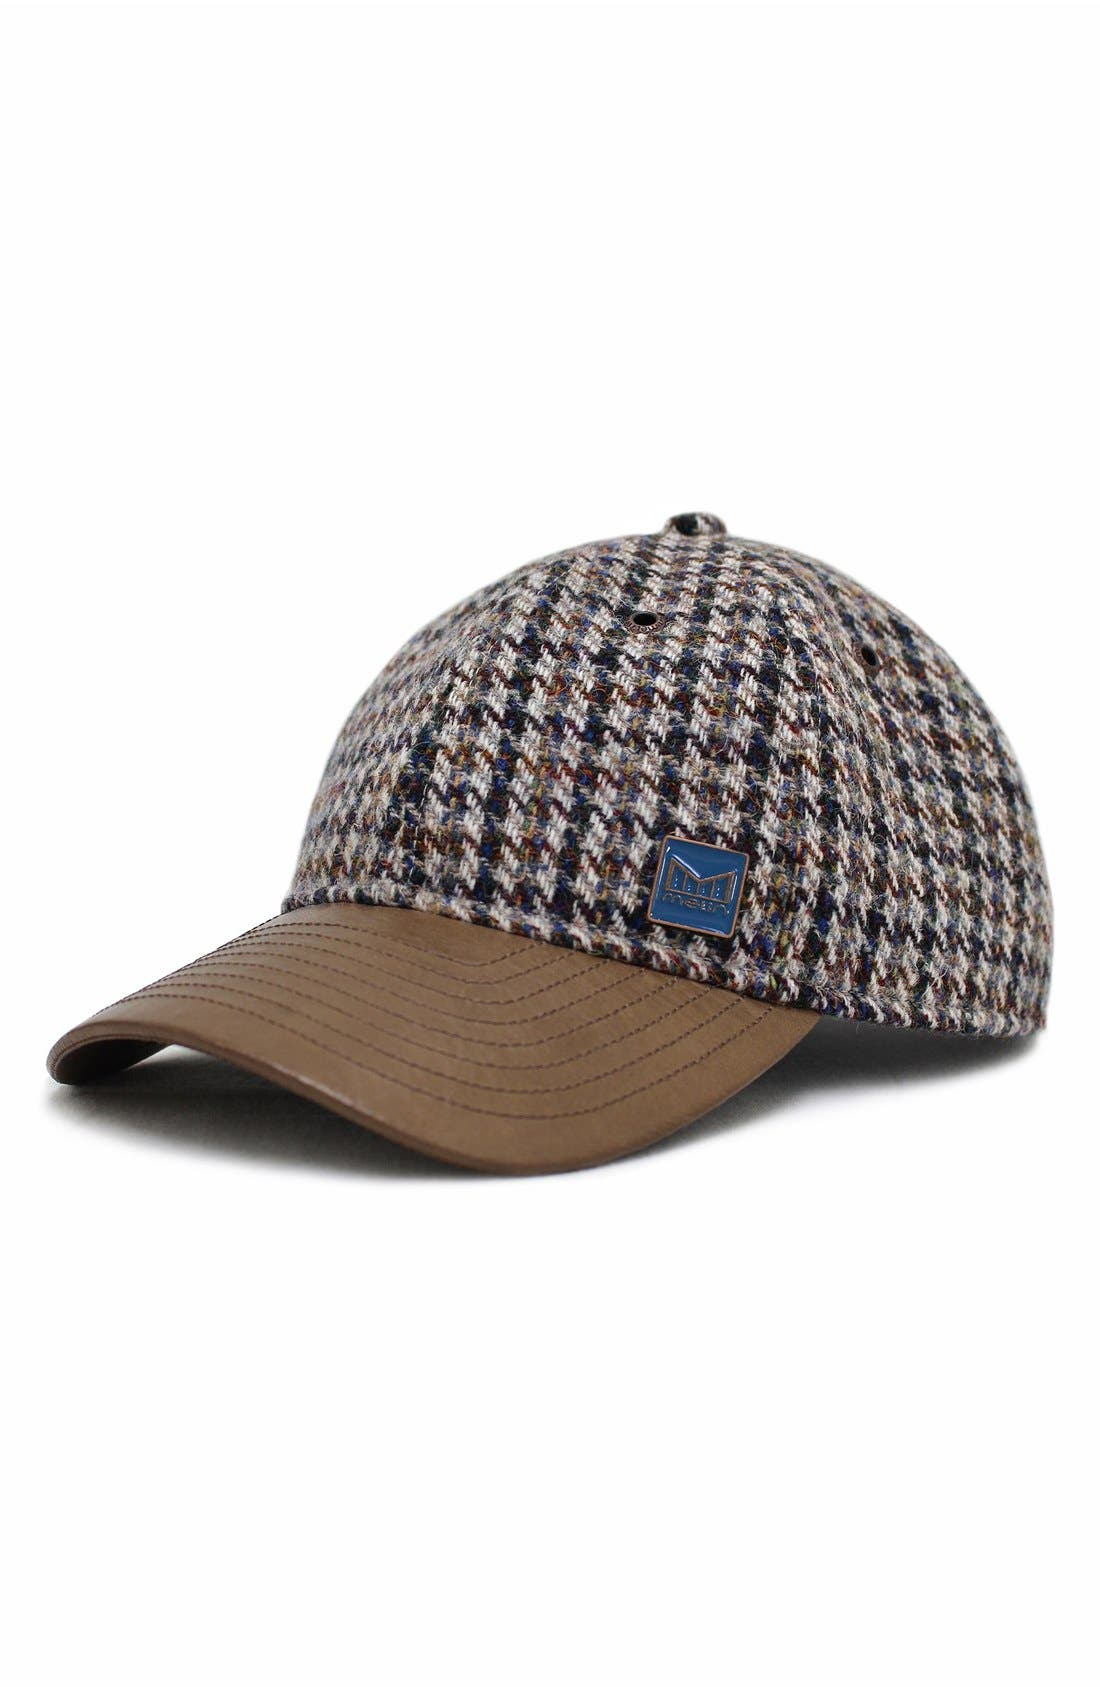 Melin 'The Voyage' Tweed & Leather Baseball Cap